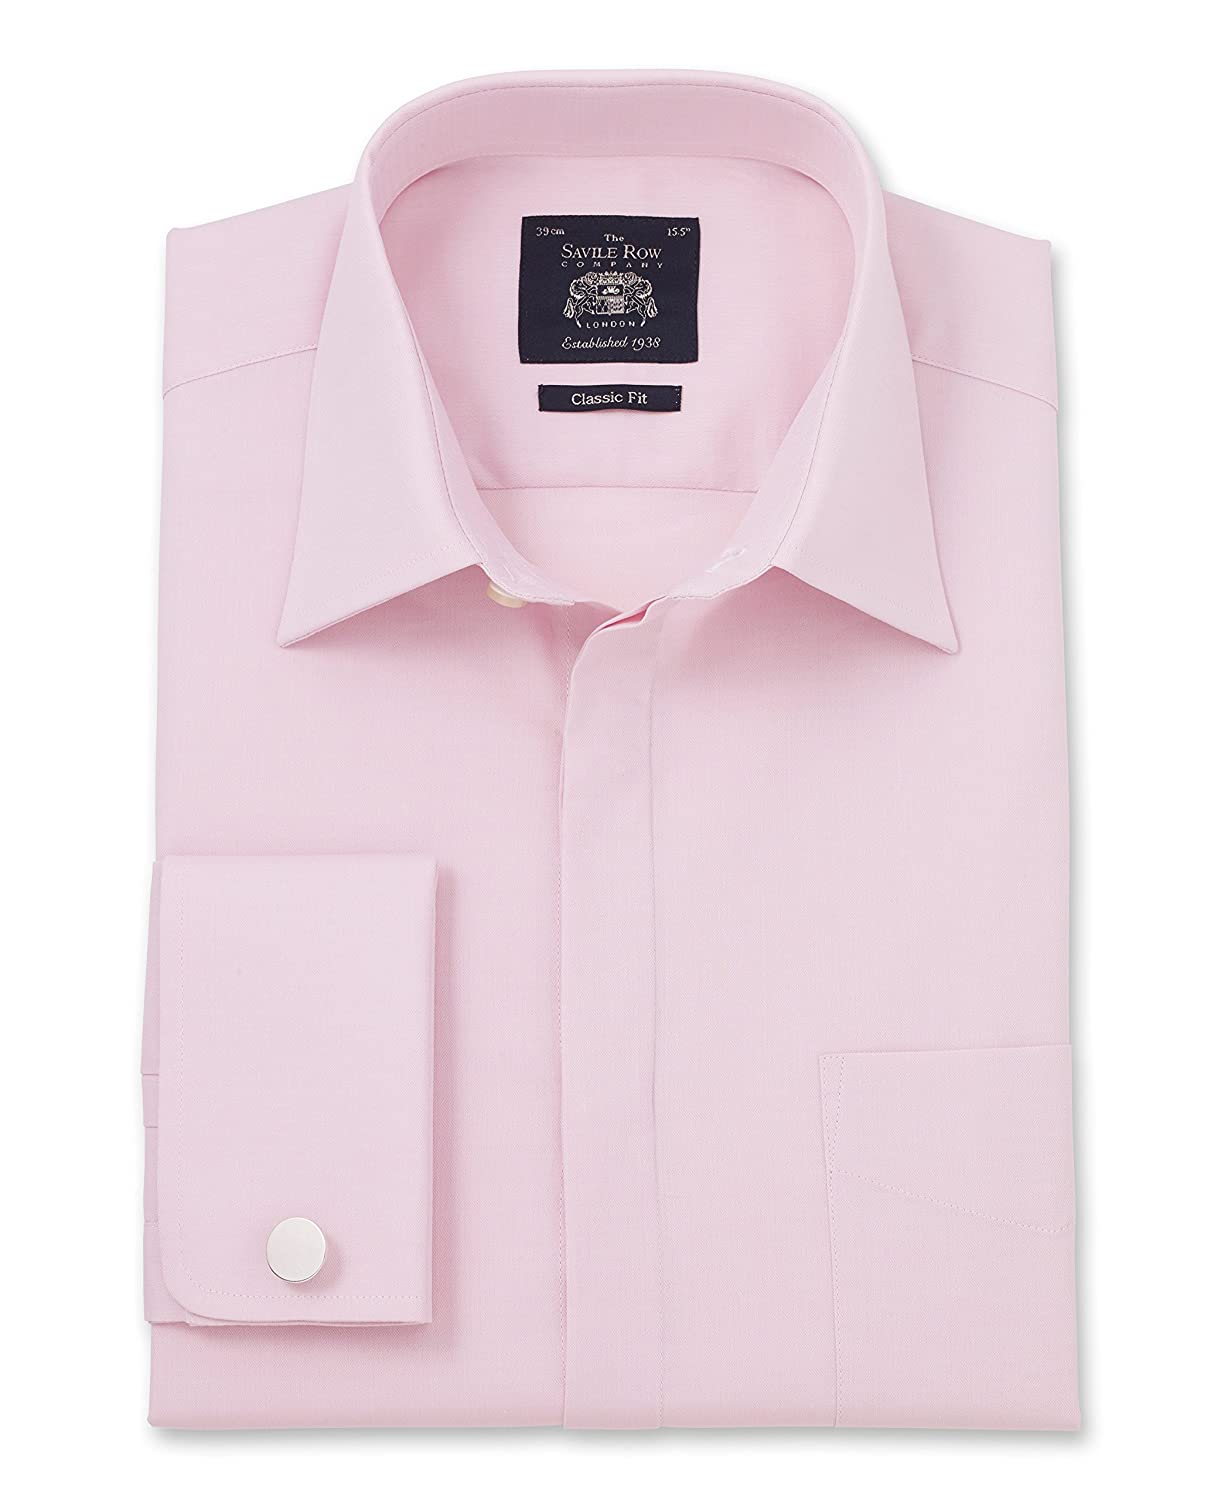 TALLA 38 cm Collar Doble Bofetada Estándar. Savile Row Men's Pink Dobby Classic Fit Shirt - Double Cuff